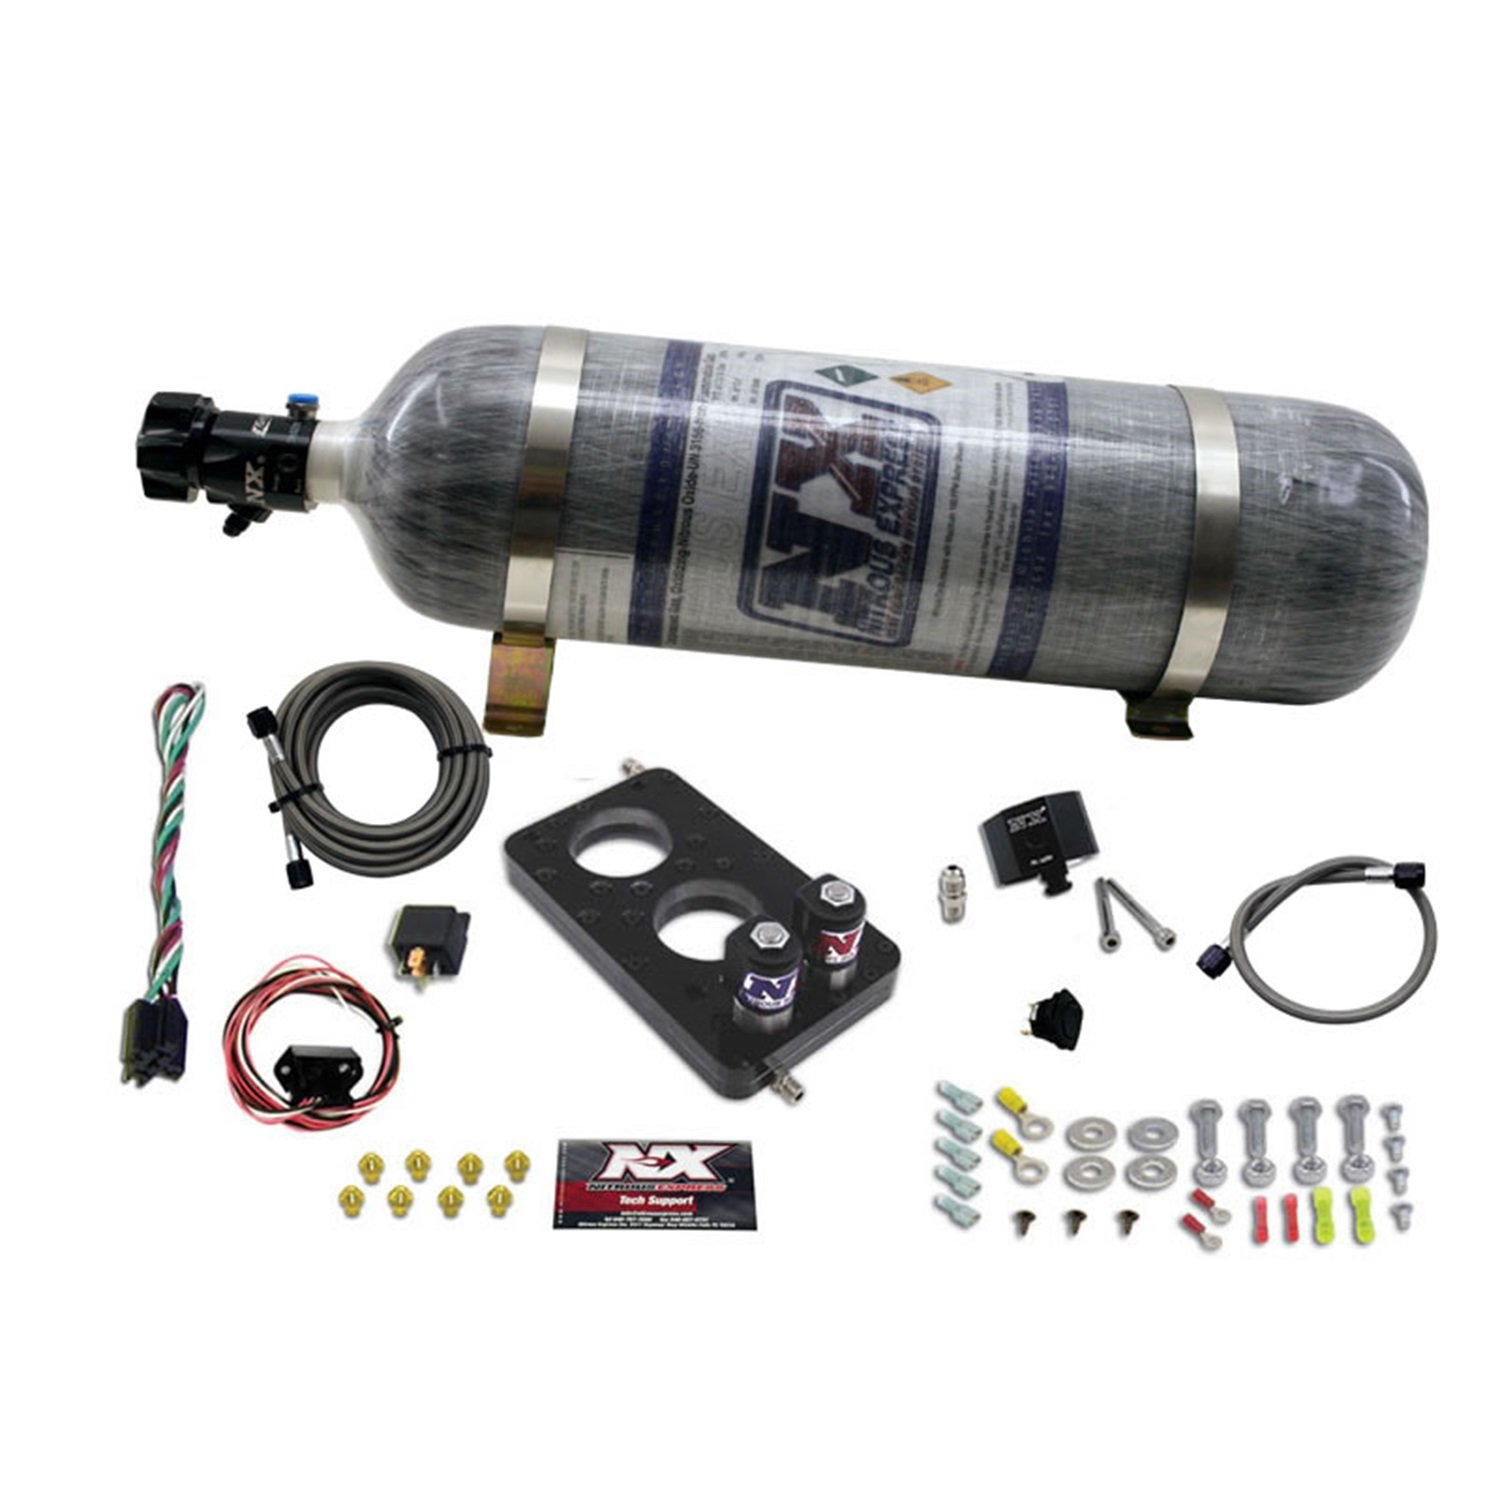 Nitrous Express 20947-12 50-150 HP 3-Valve Plate System with 12 lbs. Composite Bottle for Ford 4.6L Engine